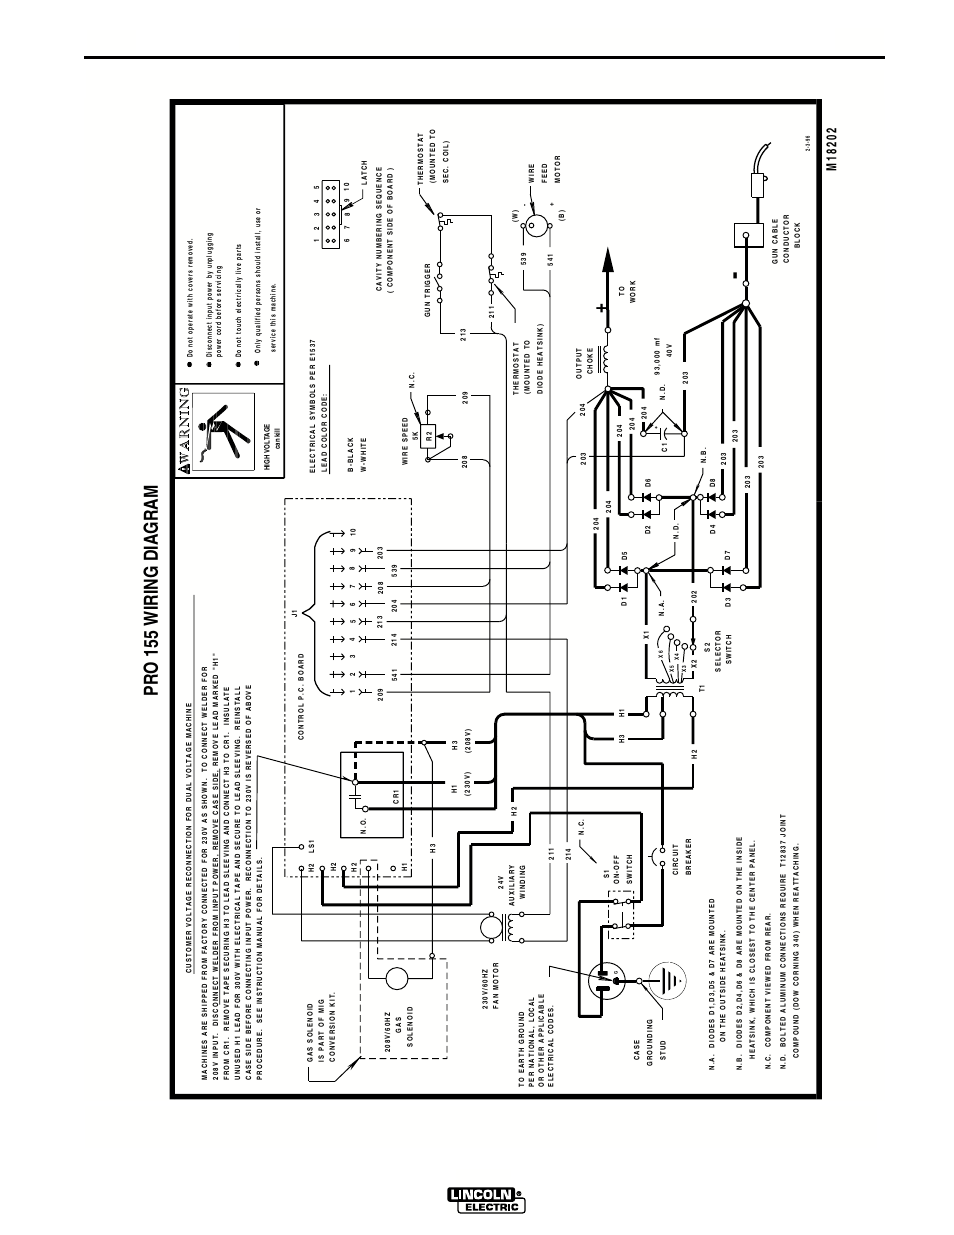 91 Suzuki Samurai Engine Diagram besides Yj Engine Diagram likewise 2002 Ford Mustang Fuse Panel Under Dash Diagram Mustang as well Jeep Yj Fuse Box Jeep Wiring Diagrams Instructions 1986 Jeep  anche Fuse Box Embly also 1992 Dodge B150 Van Steering Column. on jeep grand cherokee instrument cluster wiring diagram new